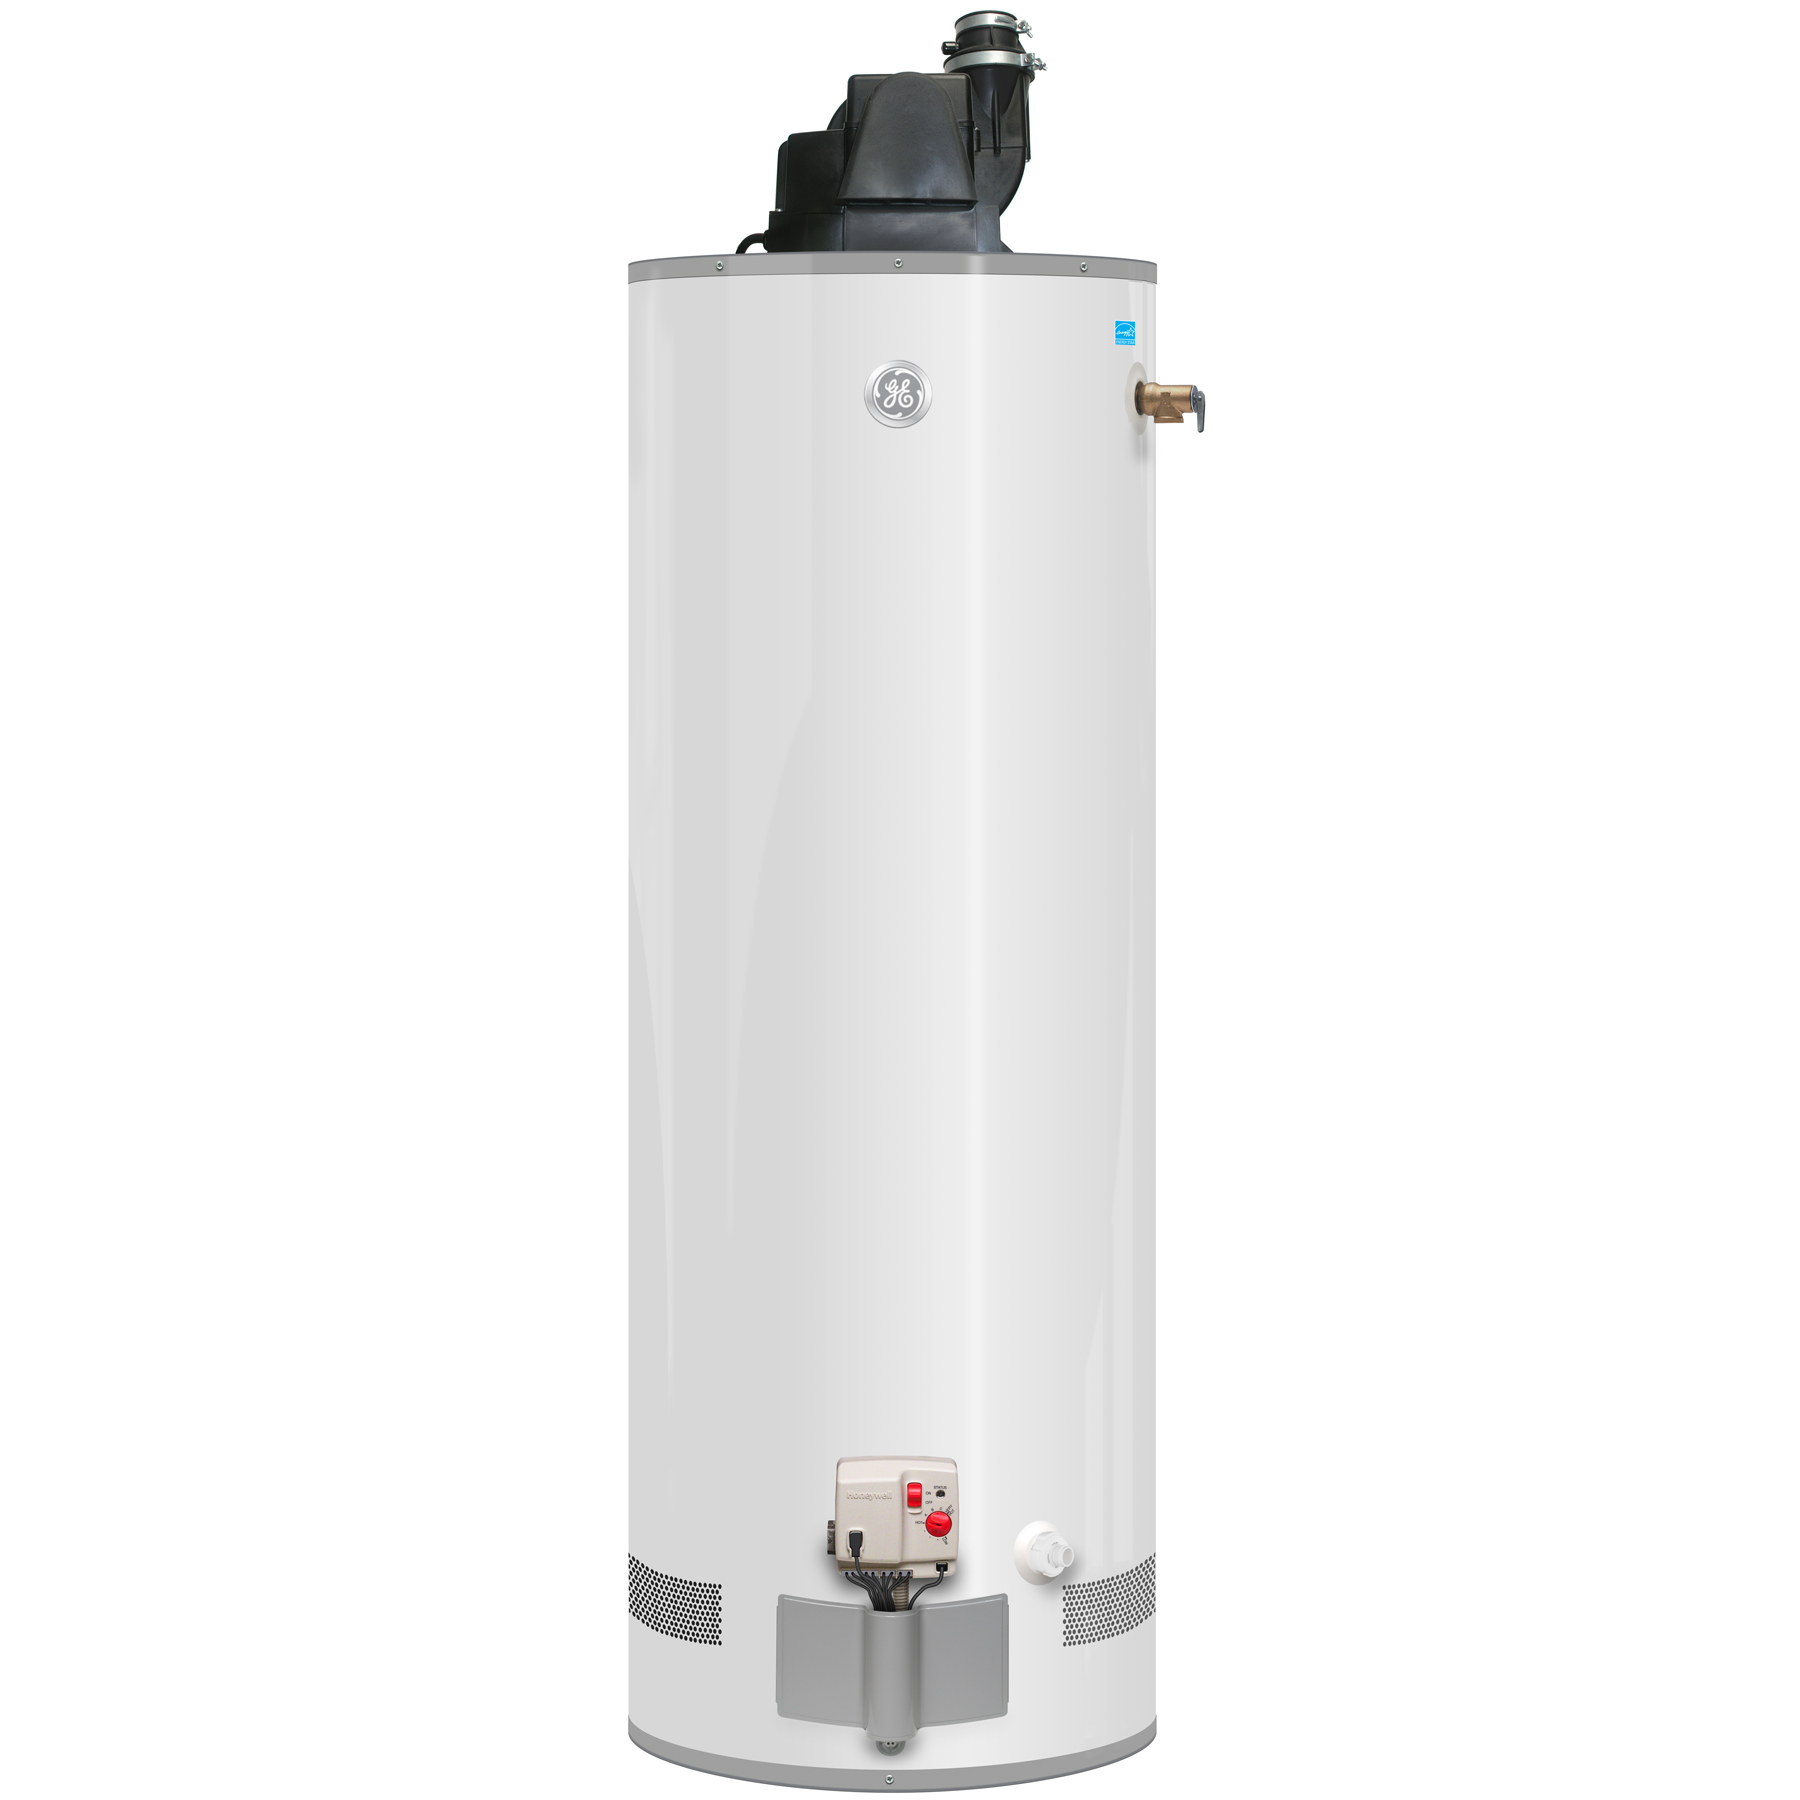 Ge 174 Gas Powervent Water Heater Gg40t06pvt Ge Appliances